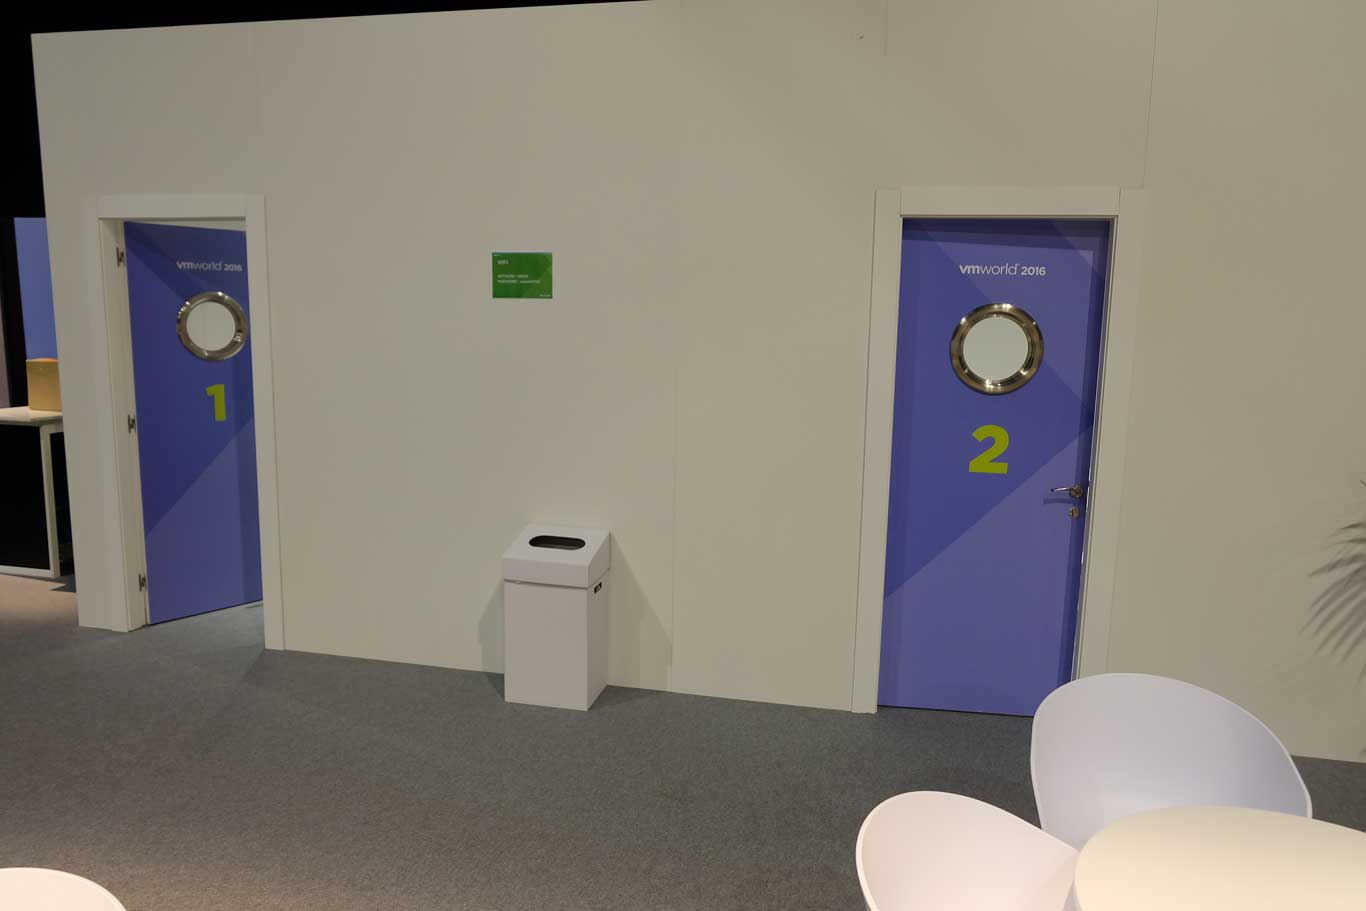 meeting room doors